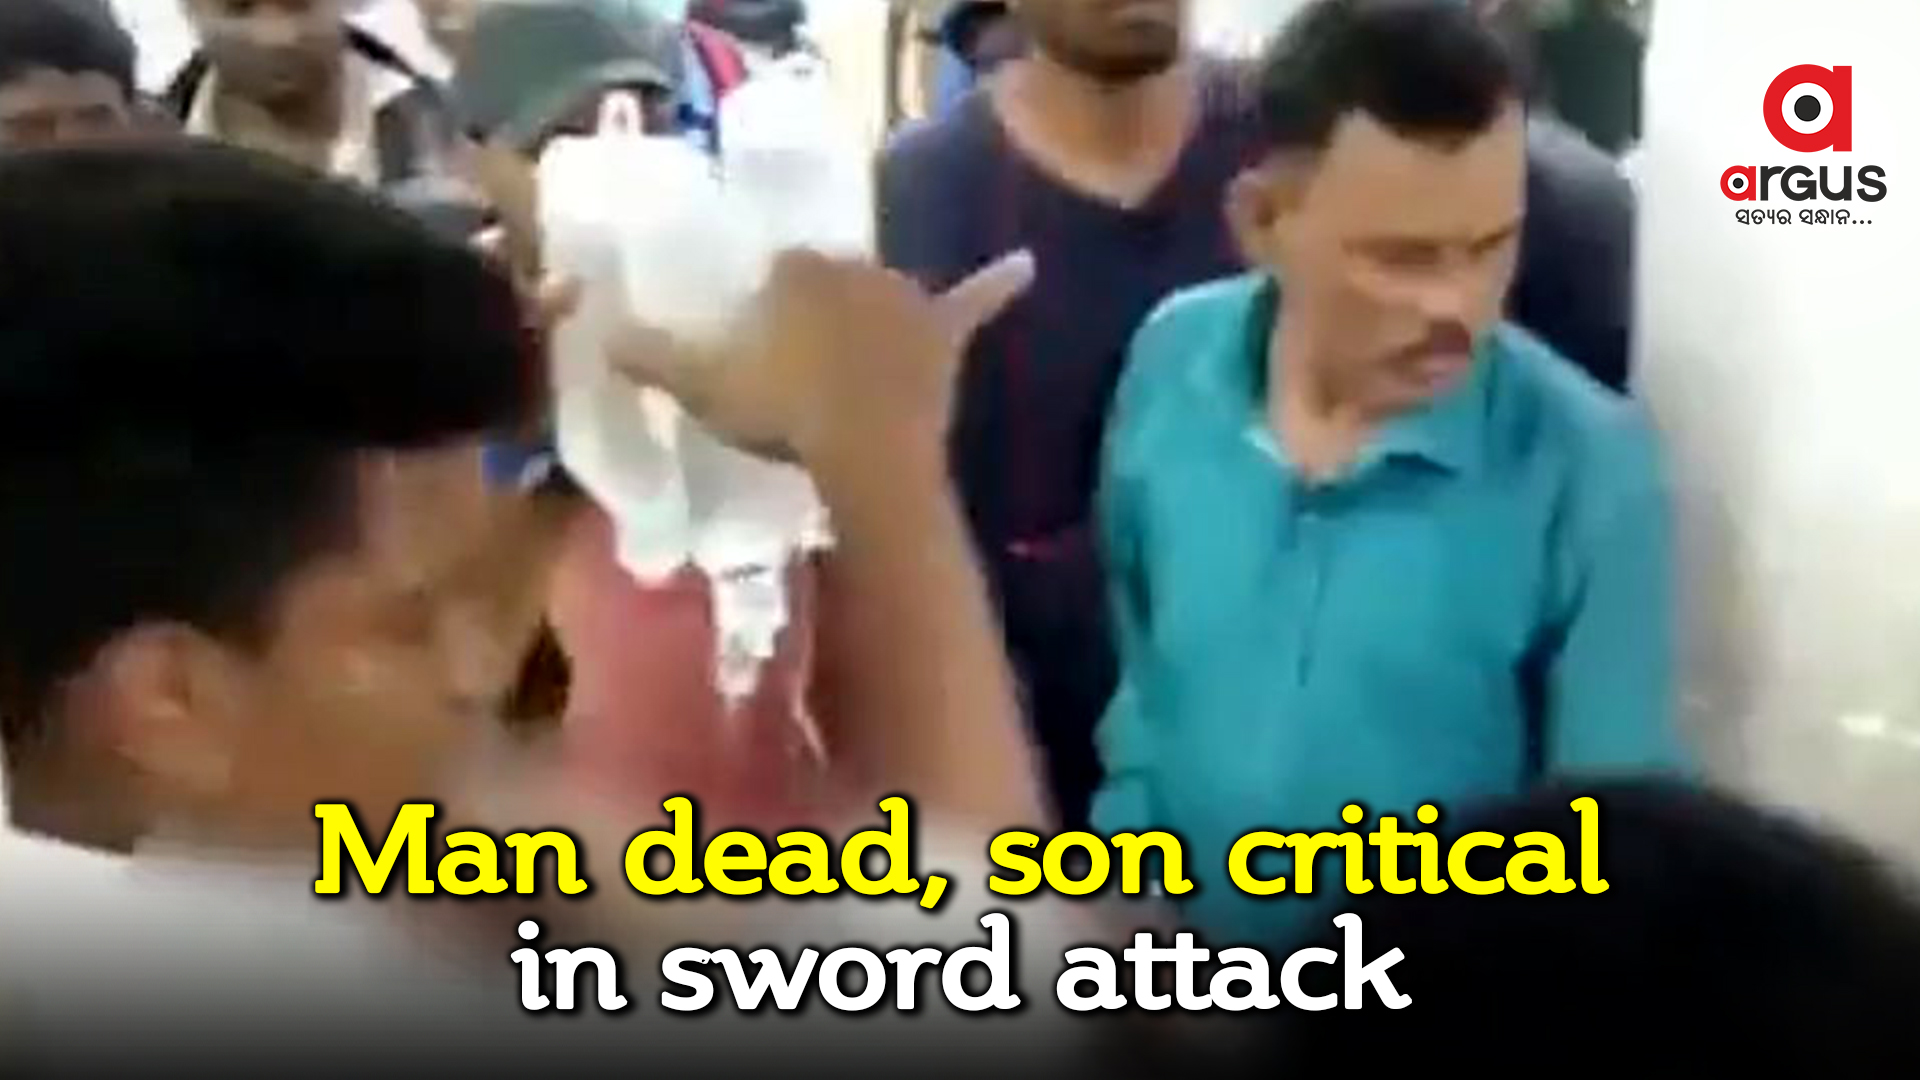 Man dead, son critical in sword attack by miscreants in Ganjam